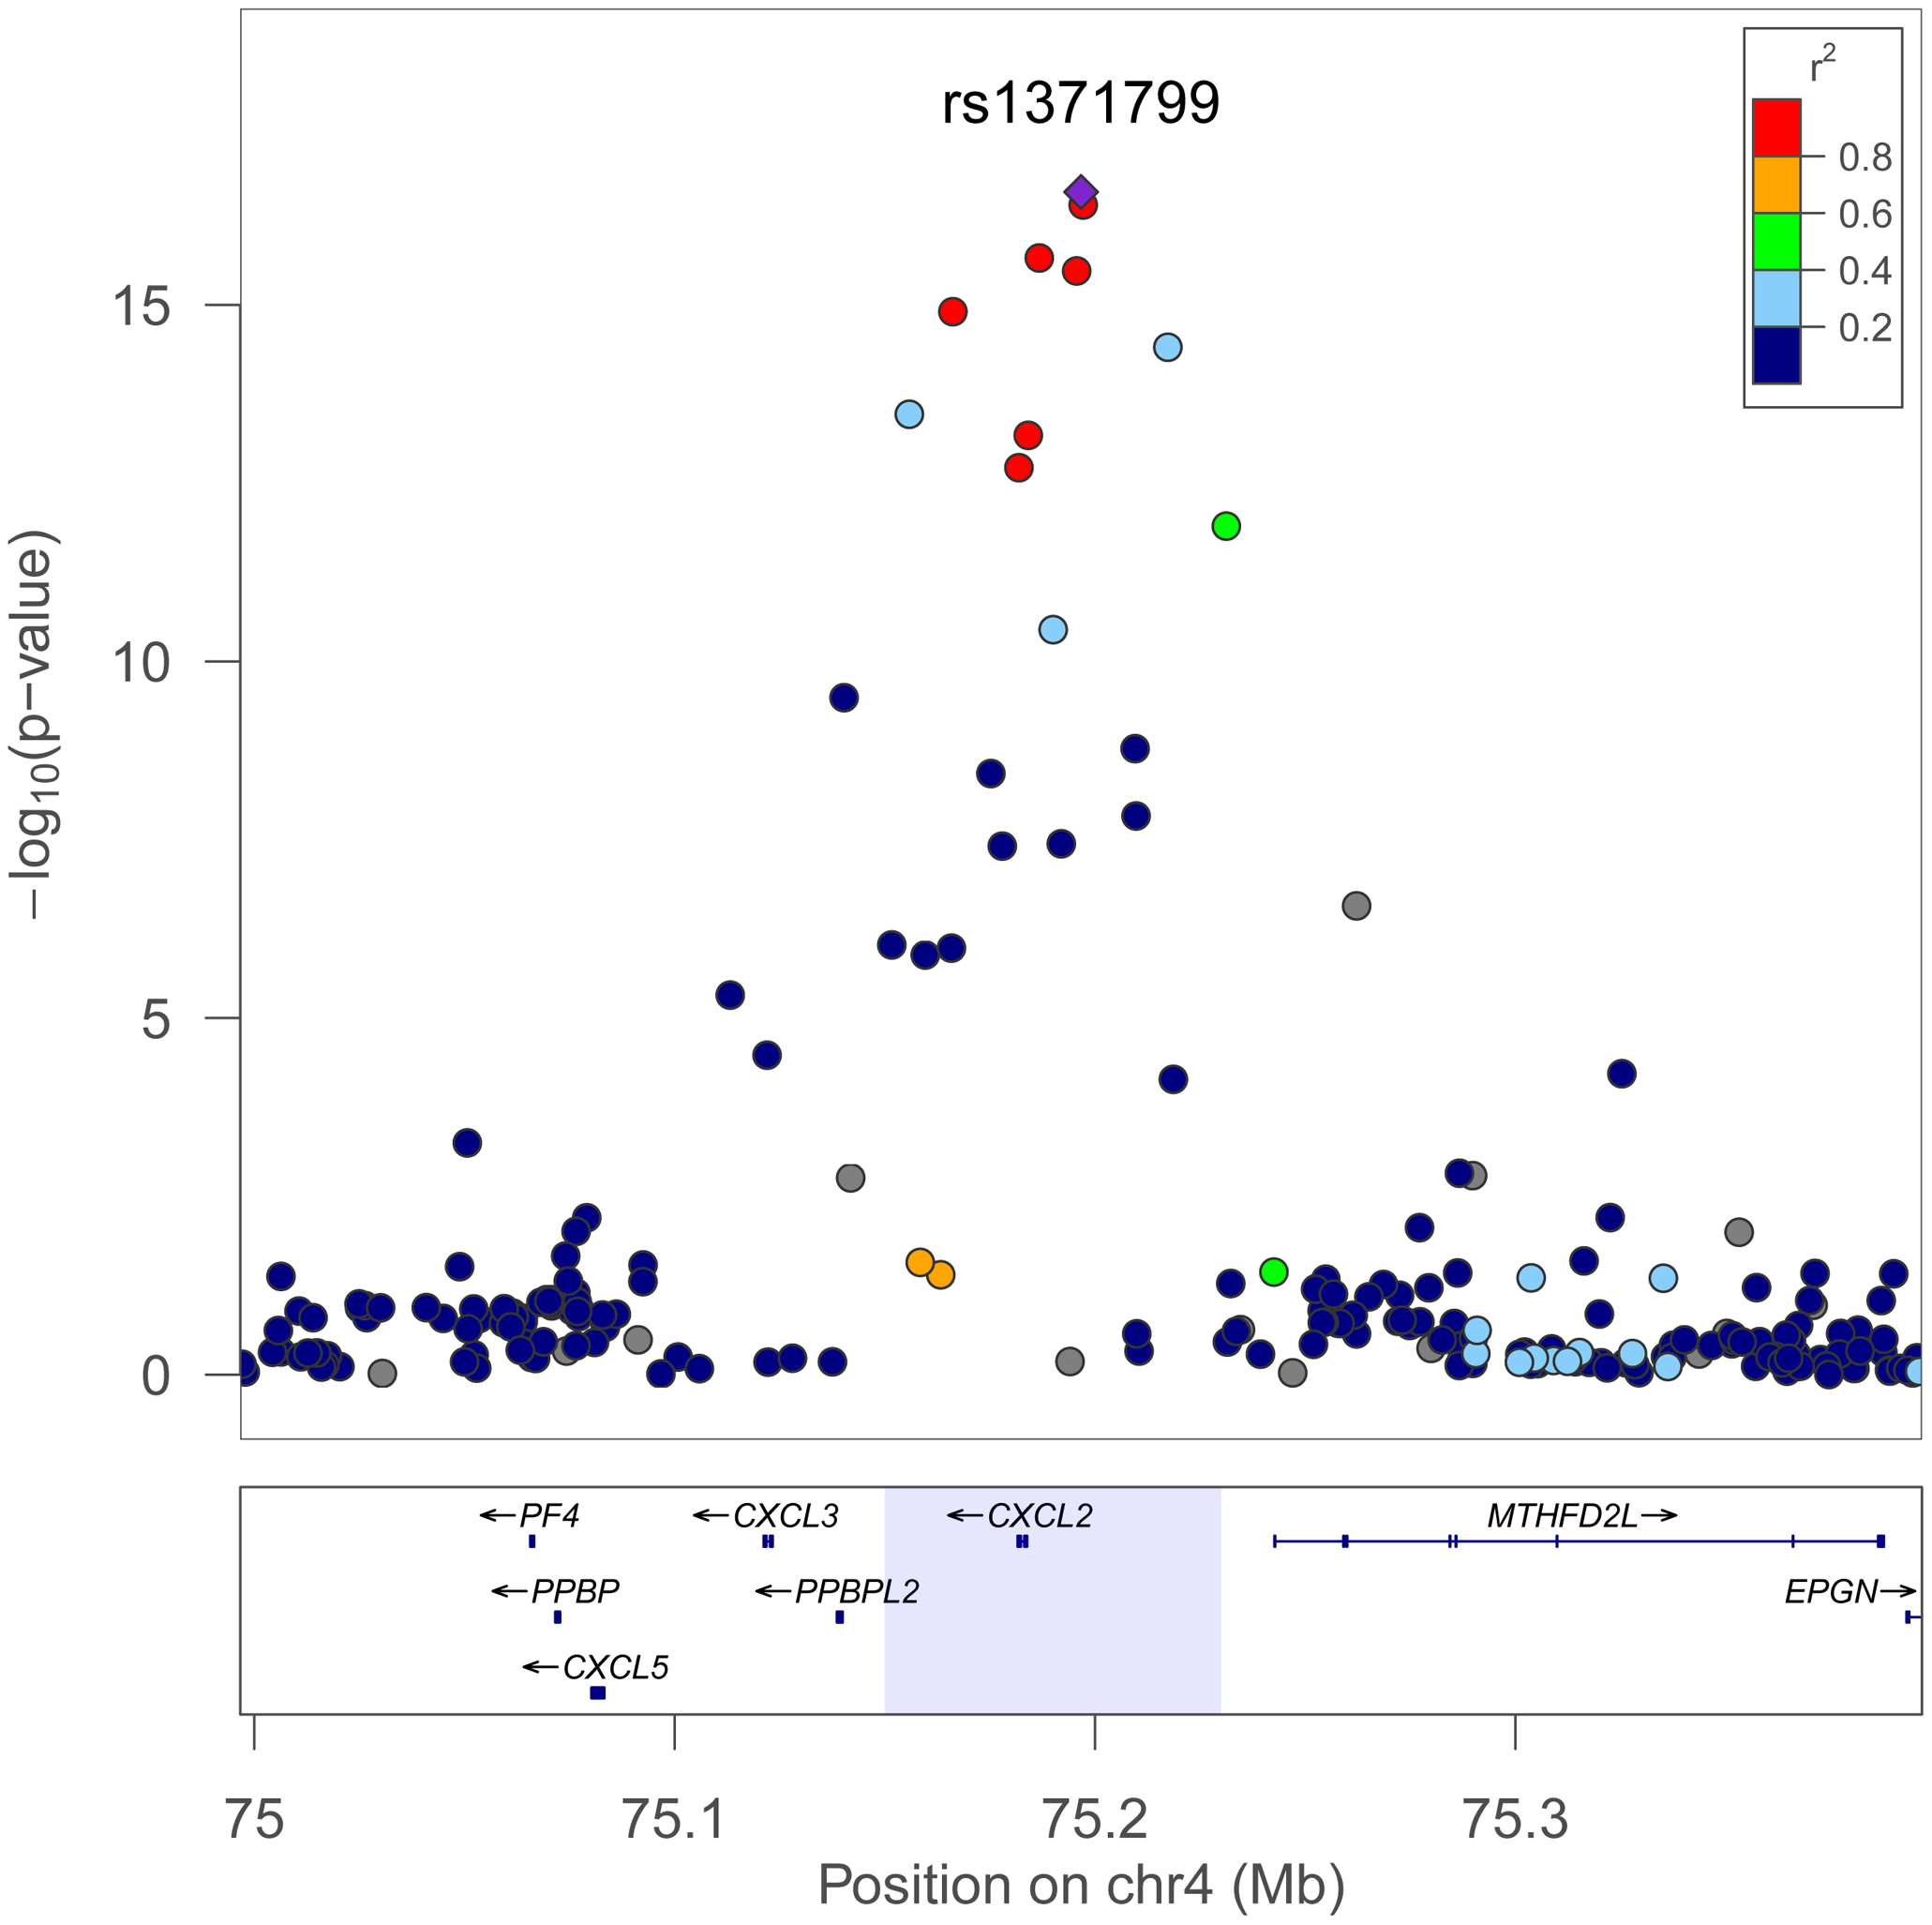 Trans-population meta-analysis results for total WBC count at the chromosome 4q13 <i>CXCL2</i> locus.